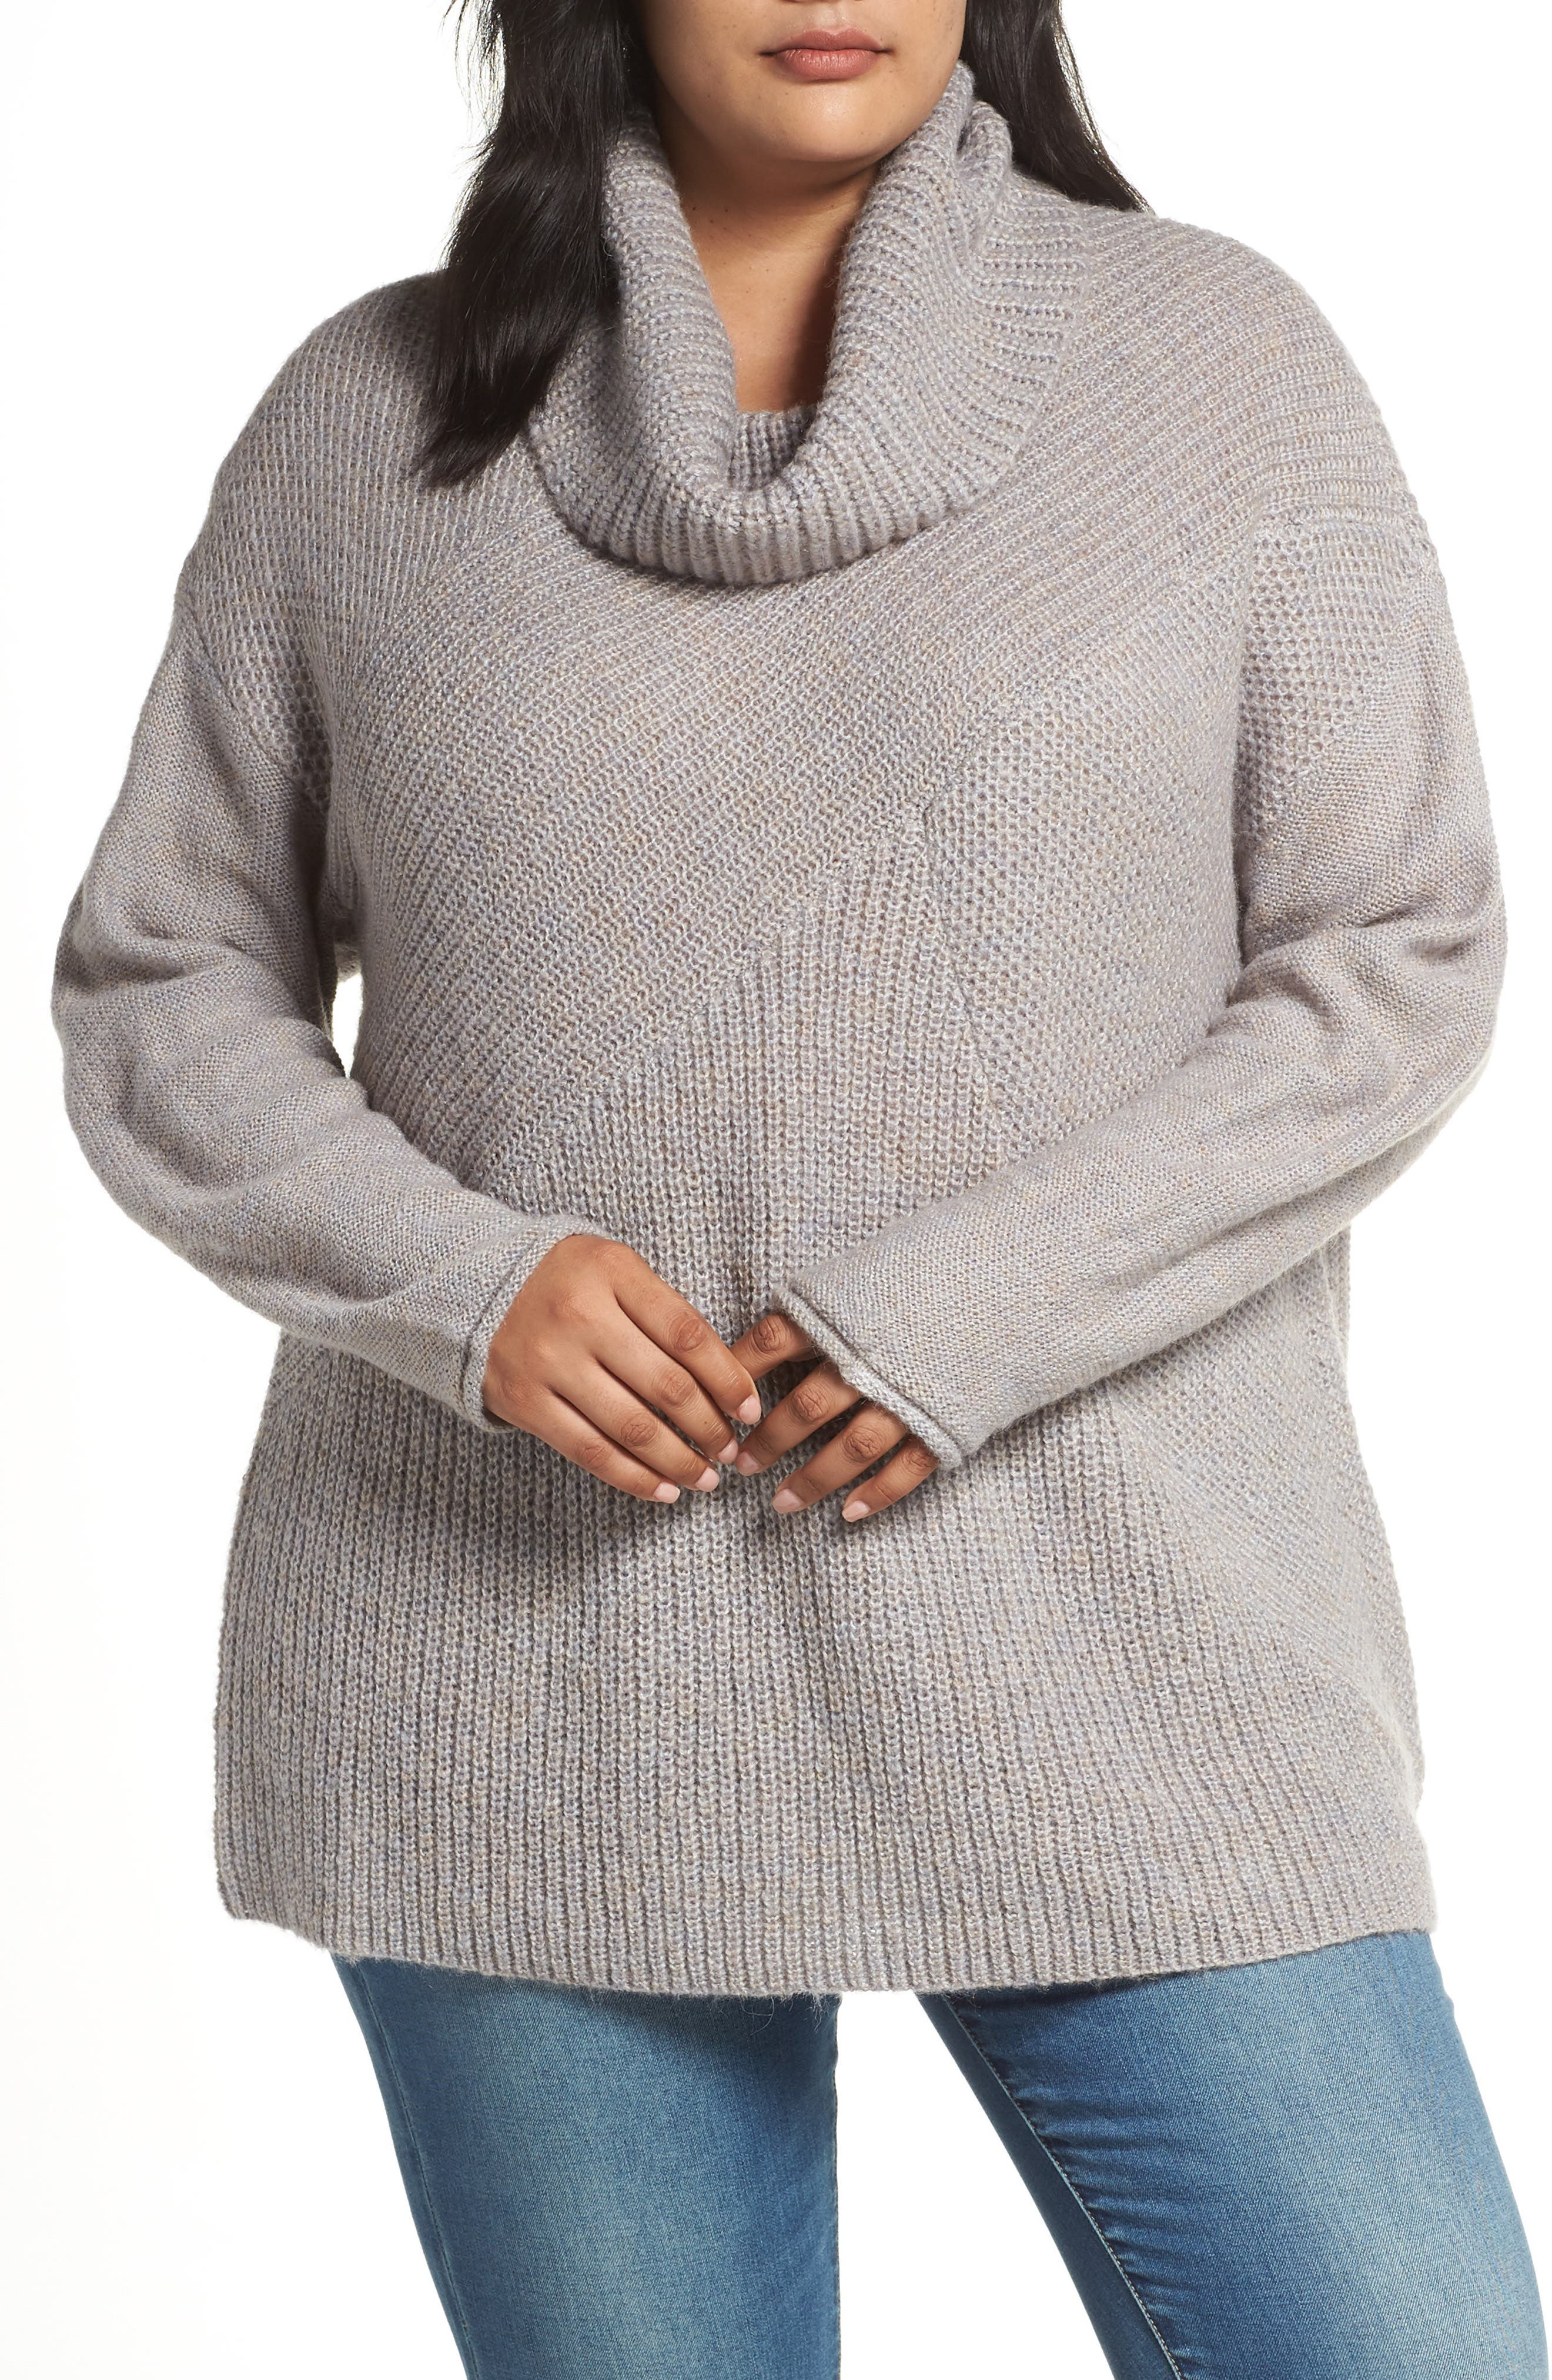 Mix Stitch Wool Blend Funnel Neck Sweater,                             Main thumbnail 1, color,                             GREY HEATHER